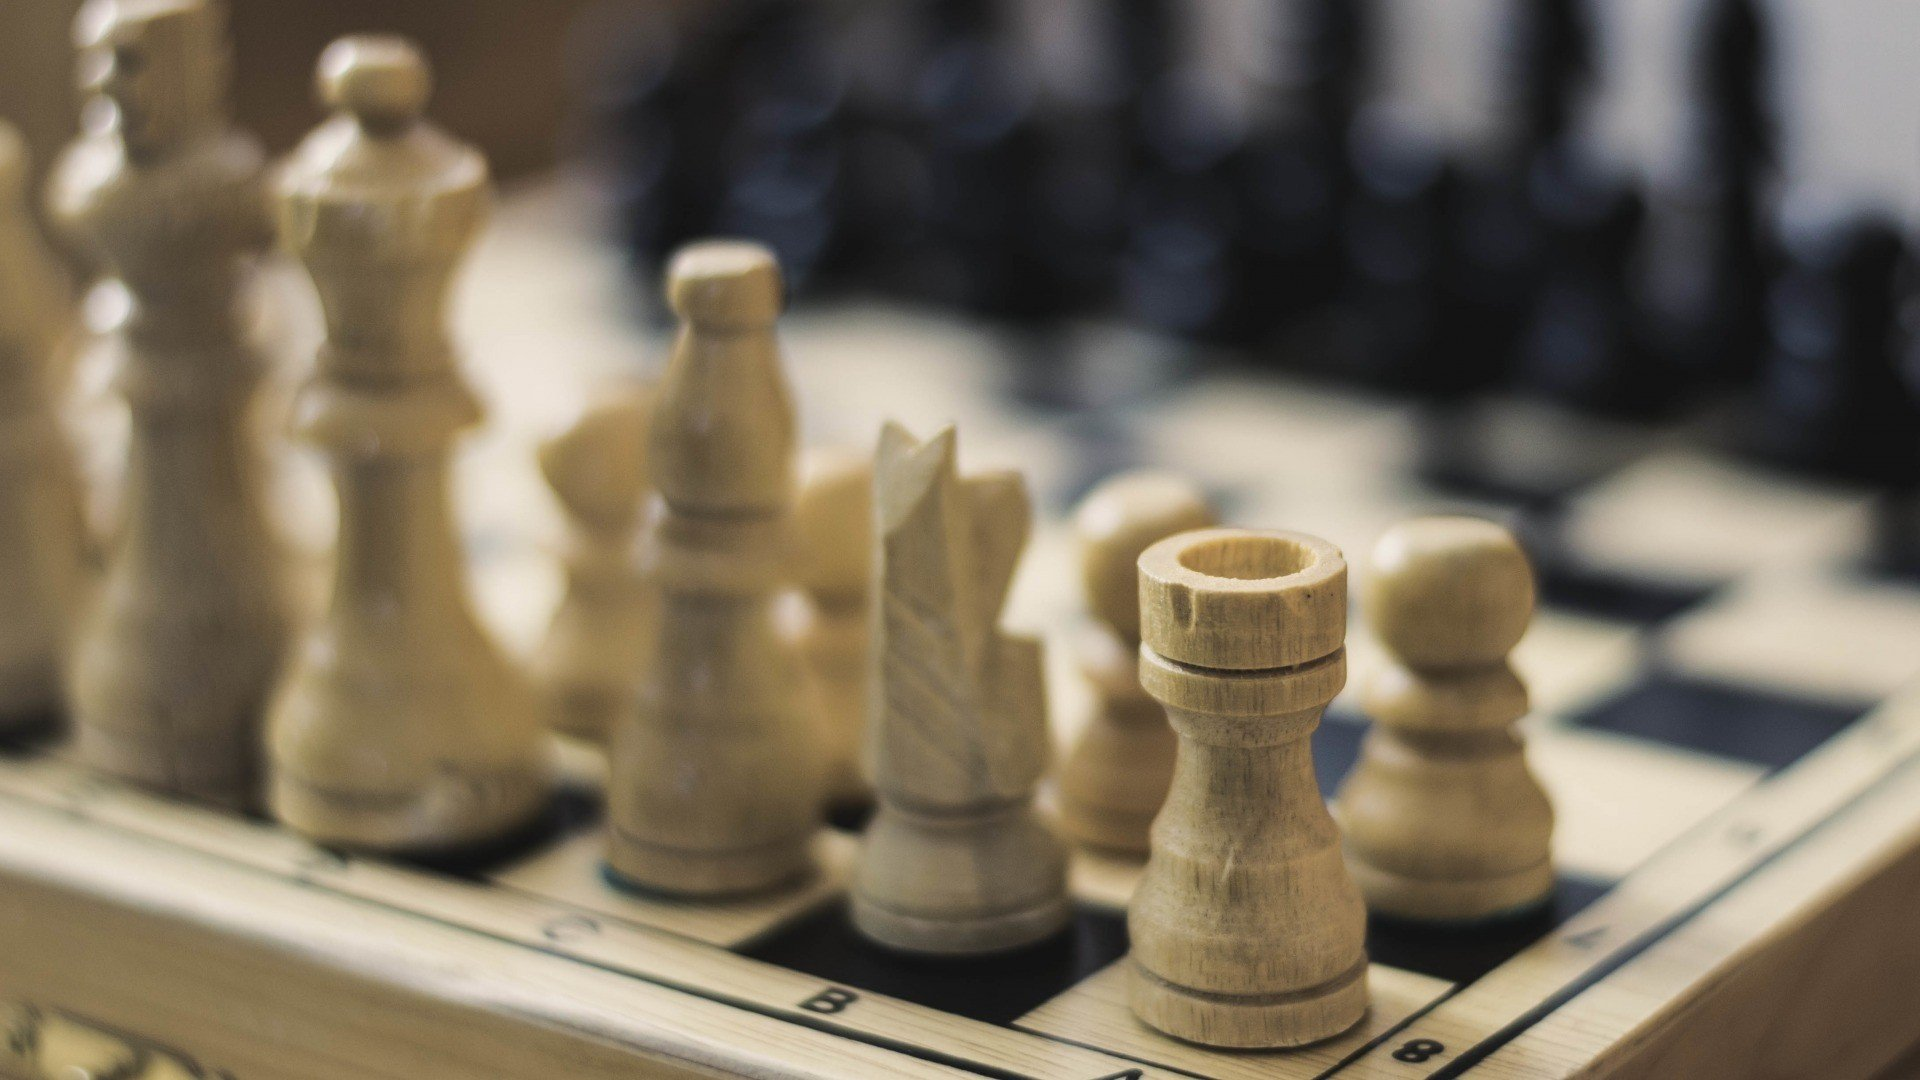 Games are art, chess isn't.